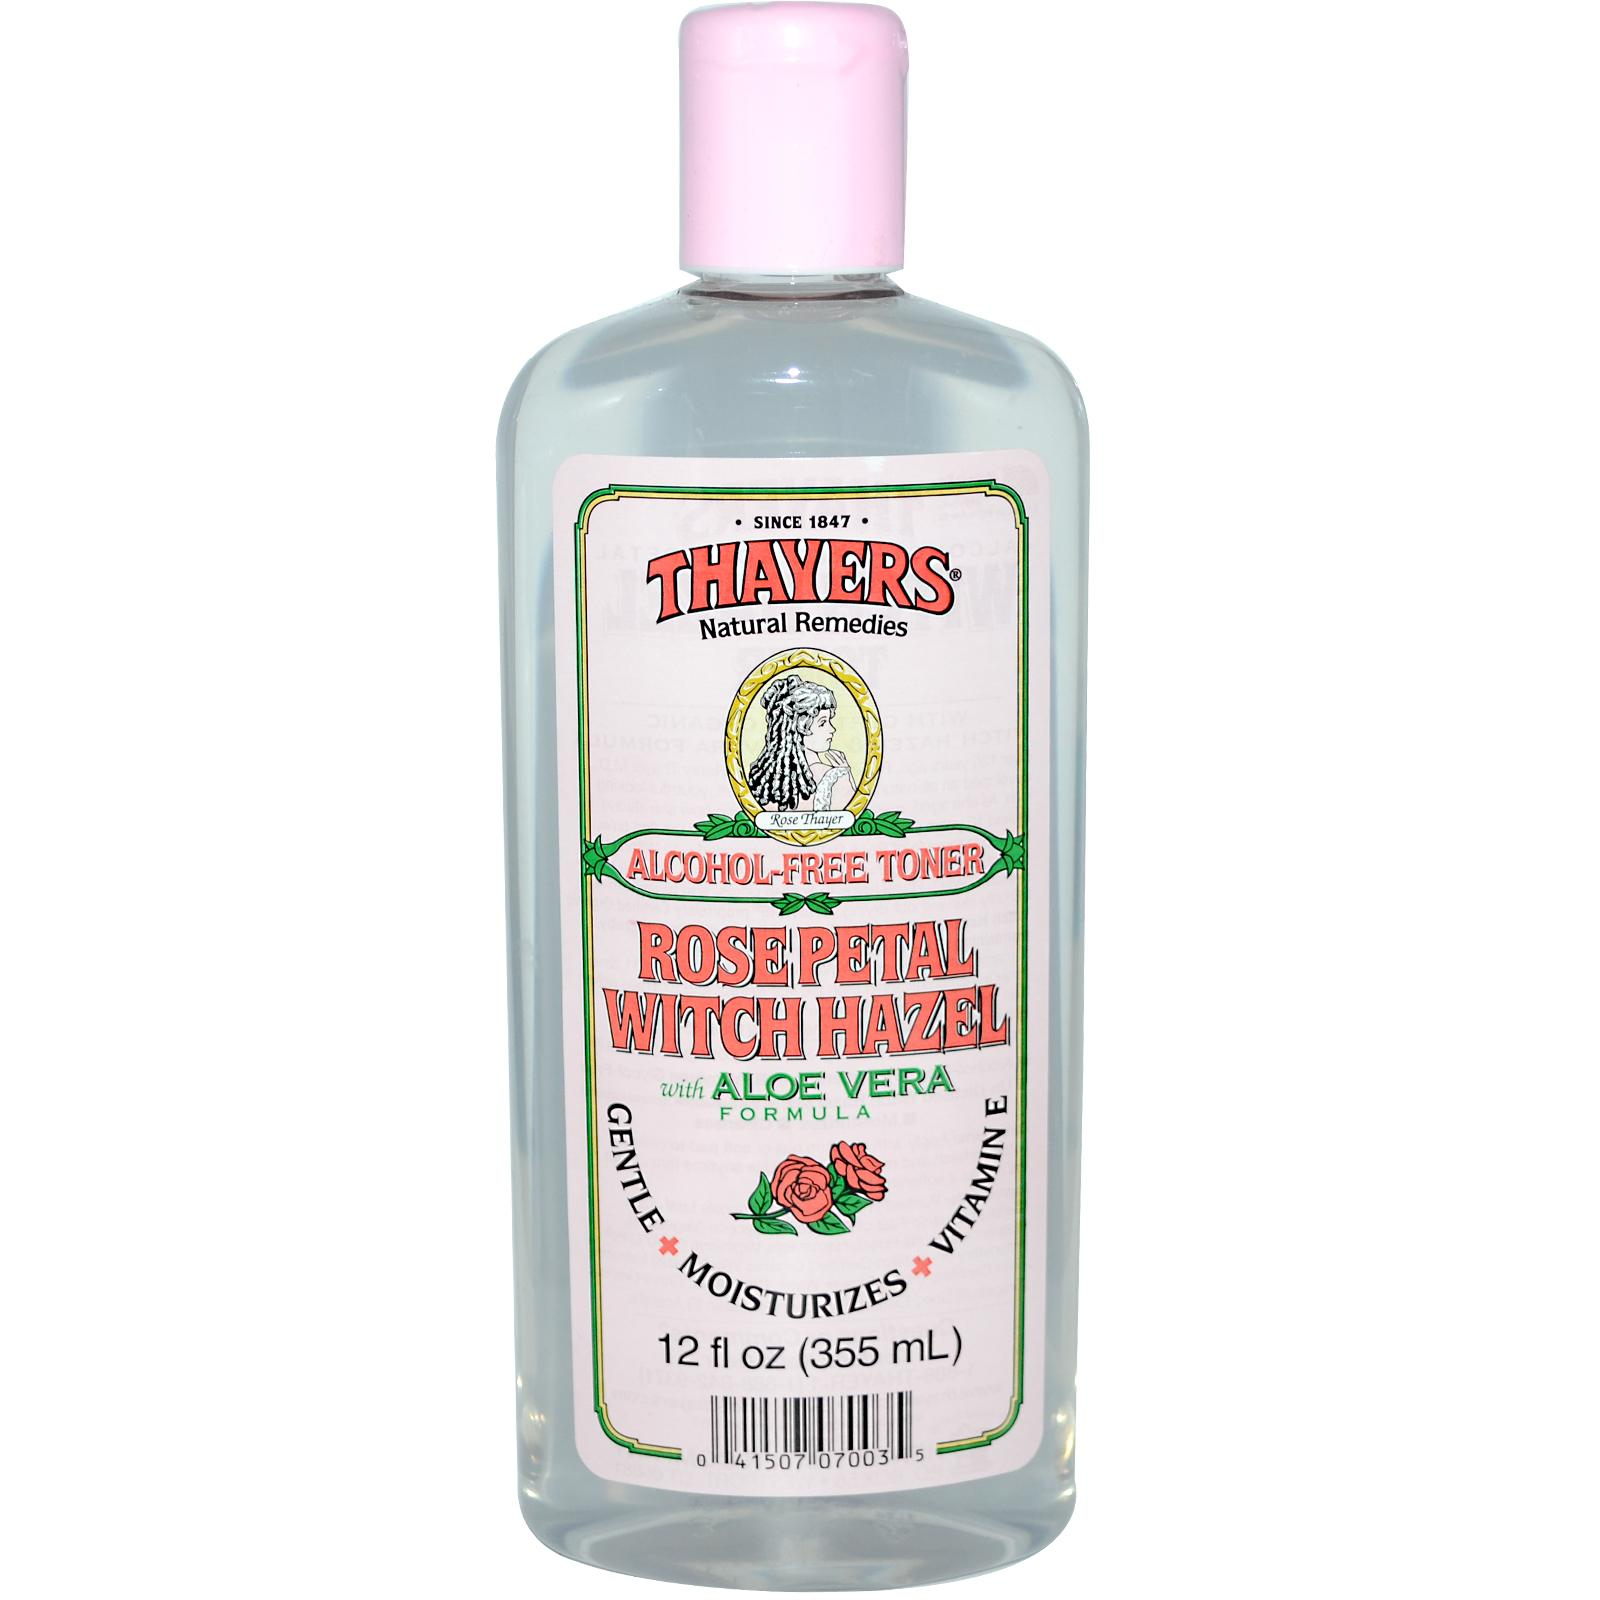 Remarkable, rather witch hazel and aloe vera for acne